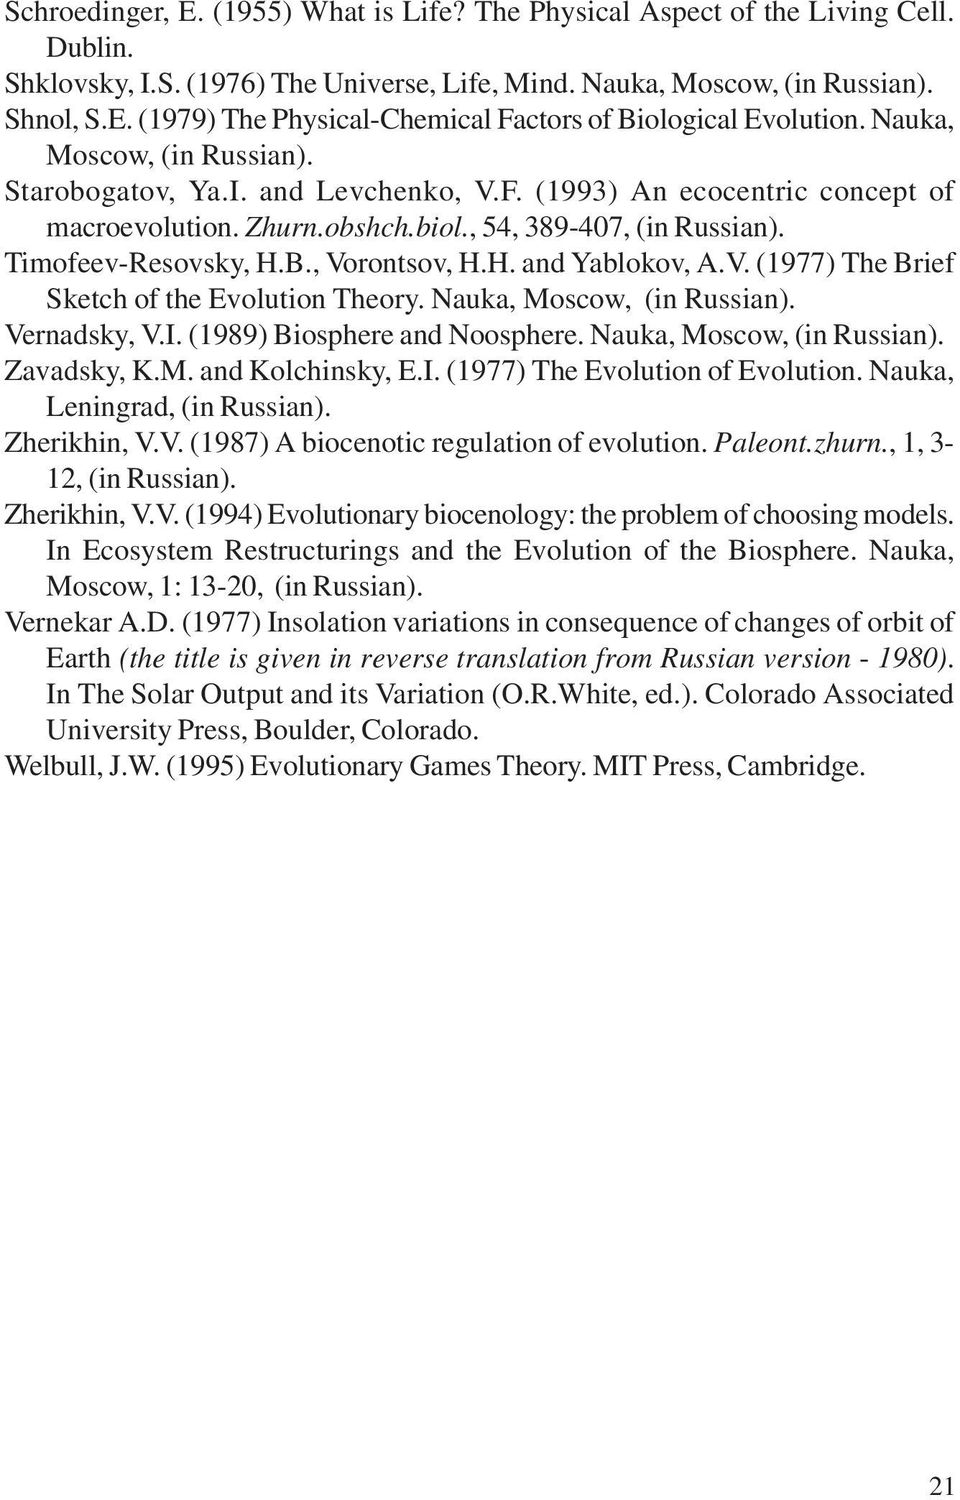 , Vorontsov, H.H. and Yablokov, A.V. (1977) The Brief Sketch of the Evolution Theory. Nauka, Moscow, (in Russian). Vernadsky, V.I. (1989) Biosphere and Noosphere. Nauka, Moscow, (in Russian). Zavadsky, K.